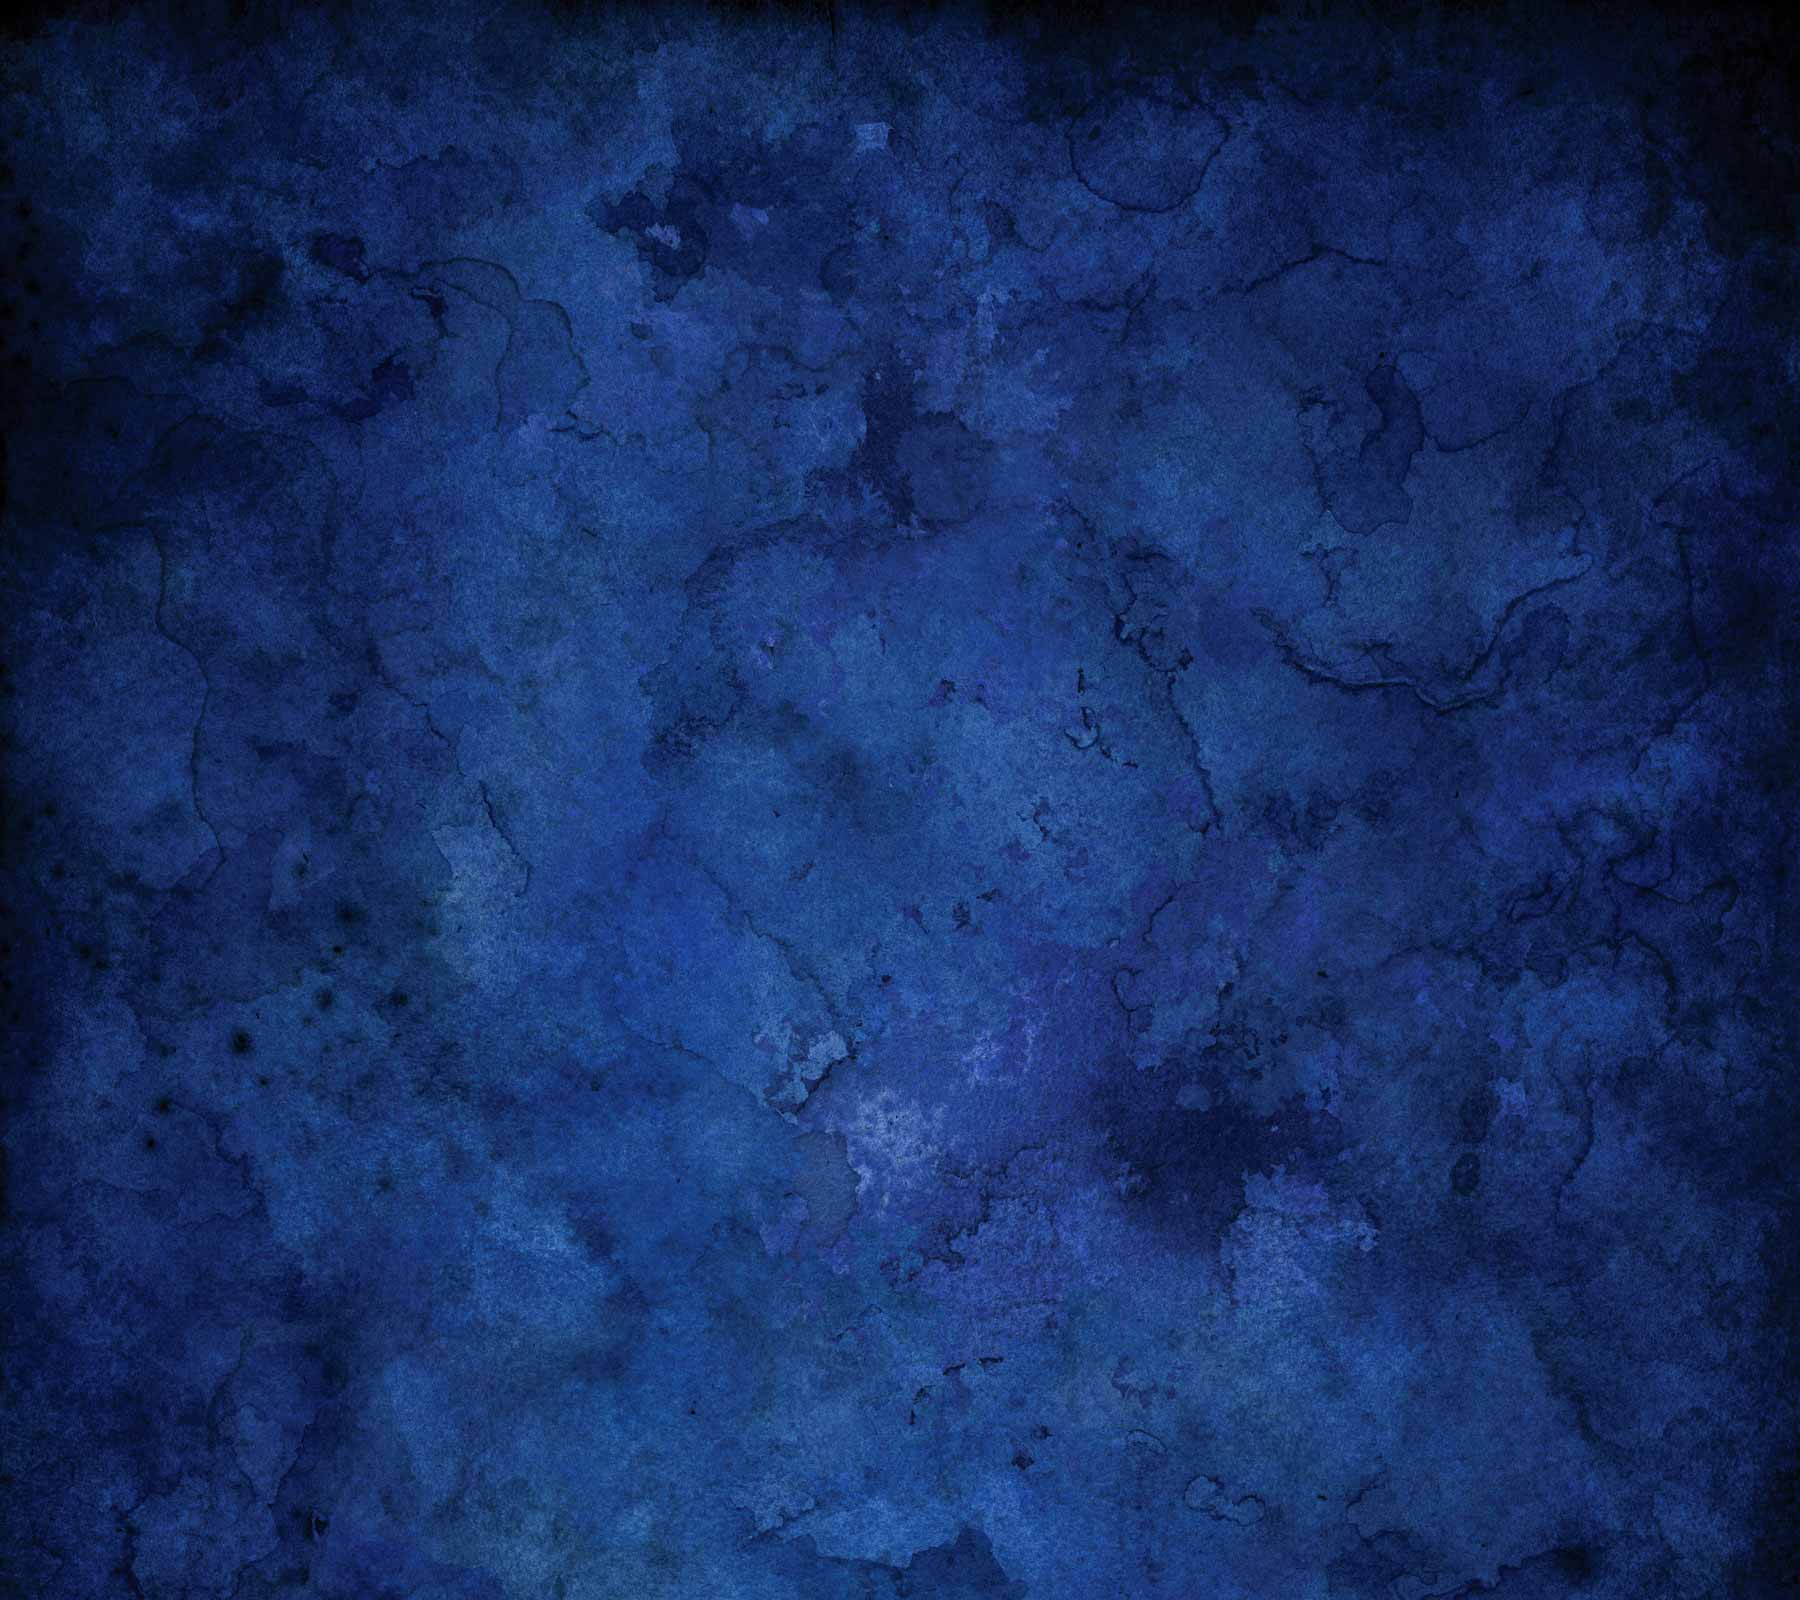 Blue Marble High Quality Wallpapers For Free Dark Blue Marble Background Hd 1800x1600 Wallpaper Teahub Io